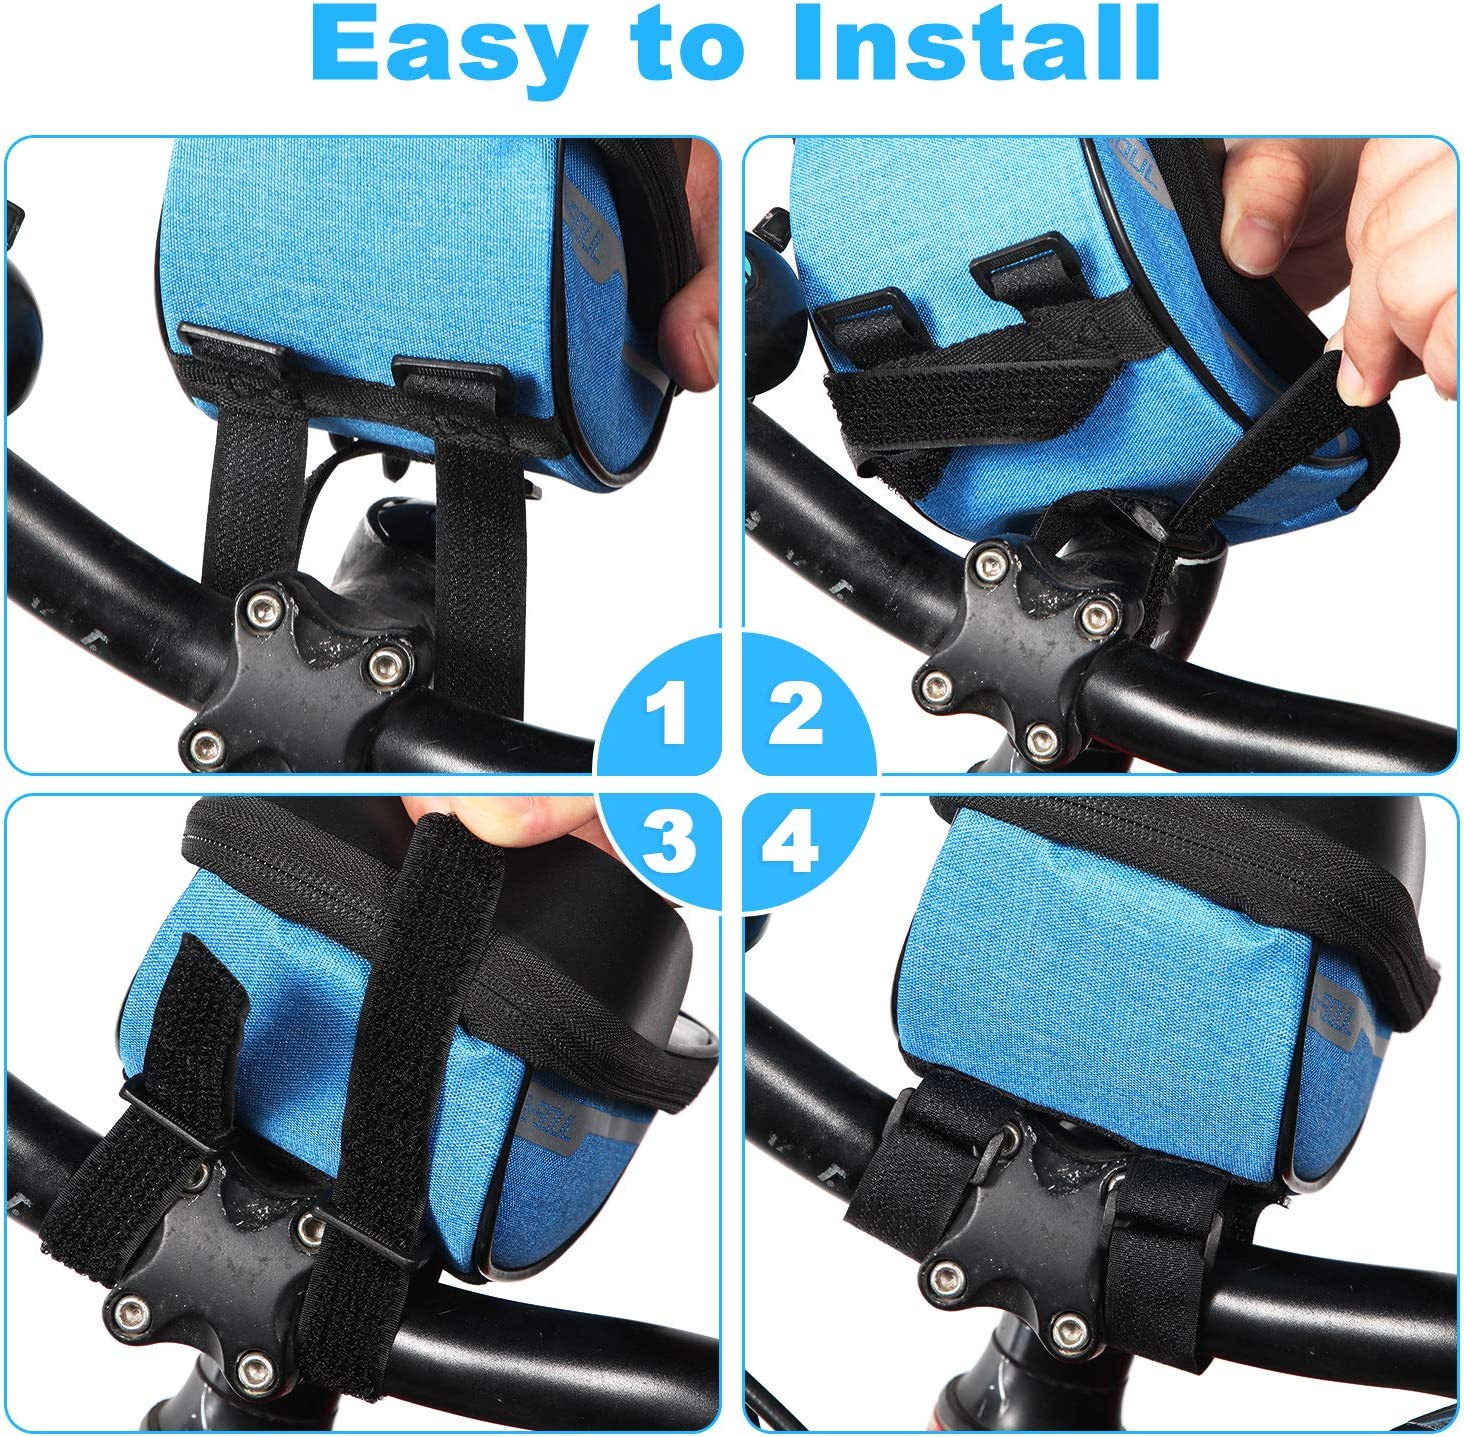 Bike Phone Front Frame Bag Cycling Handlebar Mount Storage Bag with Sun Visor for Phones Below 6.5 Inches Waterproof Touch Screen Bicycle Phone Case Holder